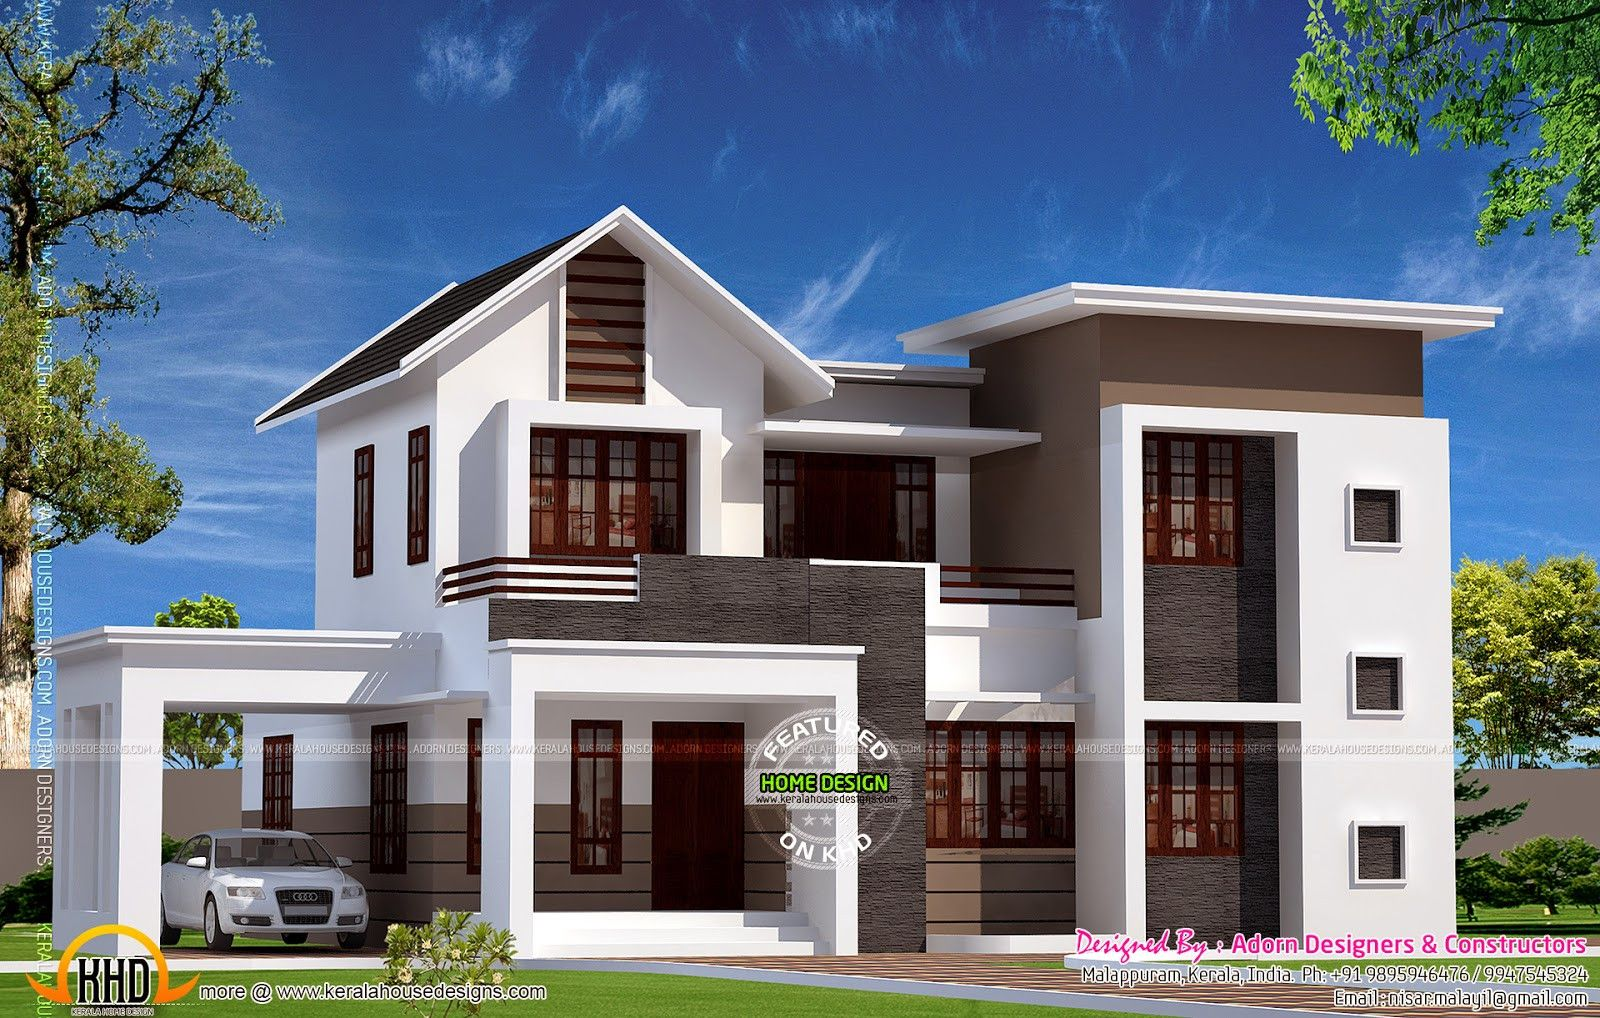 Illustrate Home Designs September Kerala Home Design Floor Plans House Plans Kerala House Design House Outside Design 2 Storey House Design